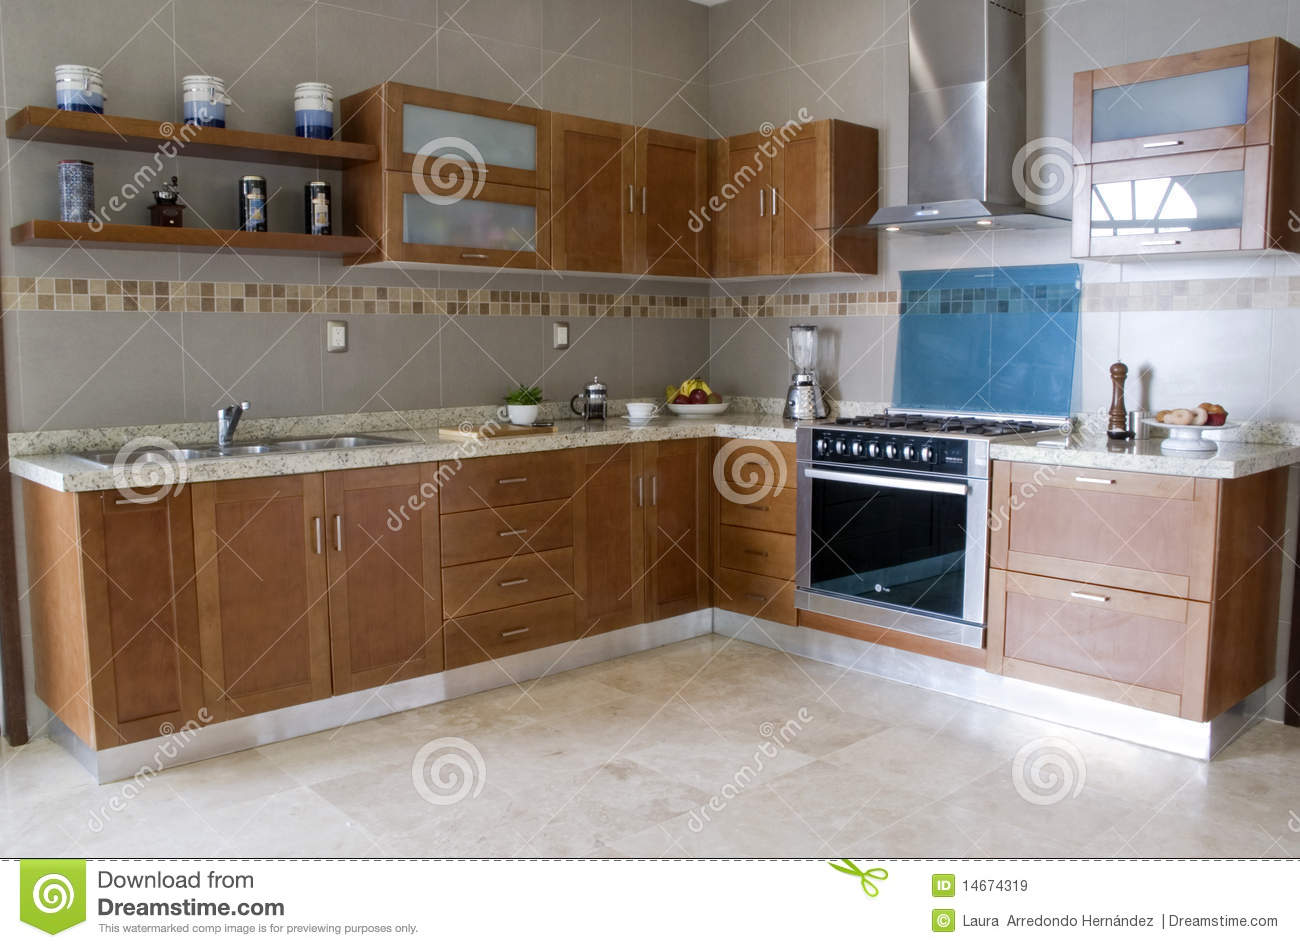 kitchen color peach royalty free stock images - image: 14674319